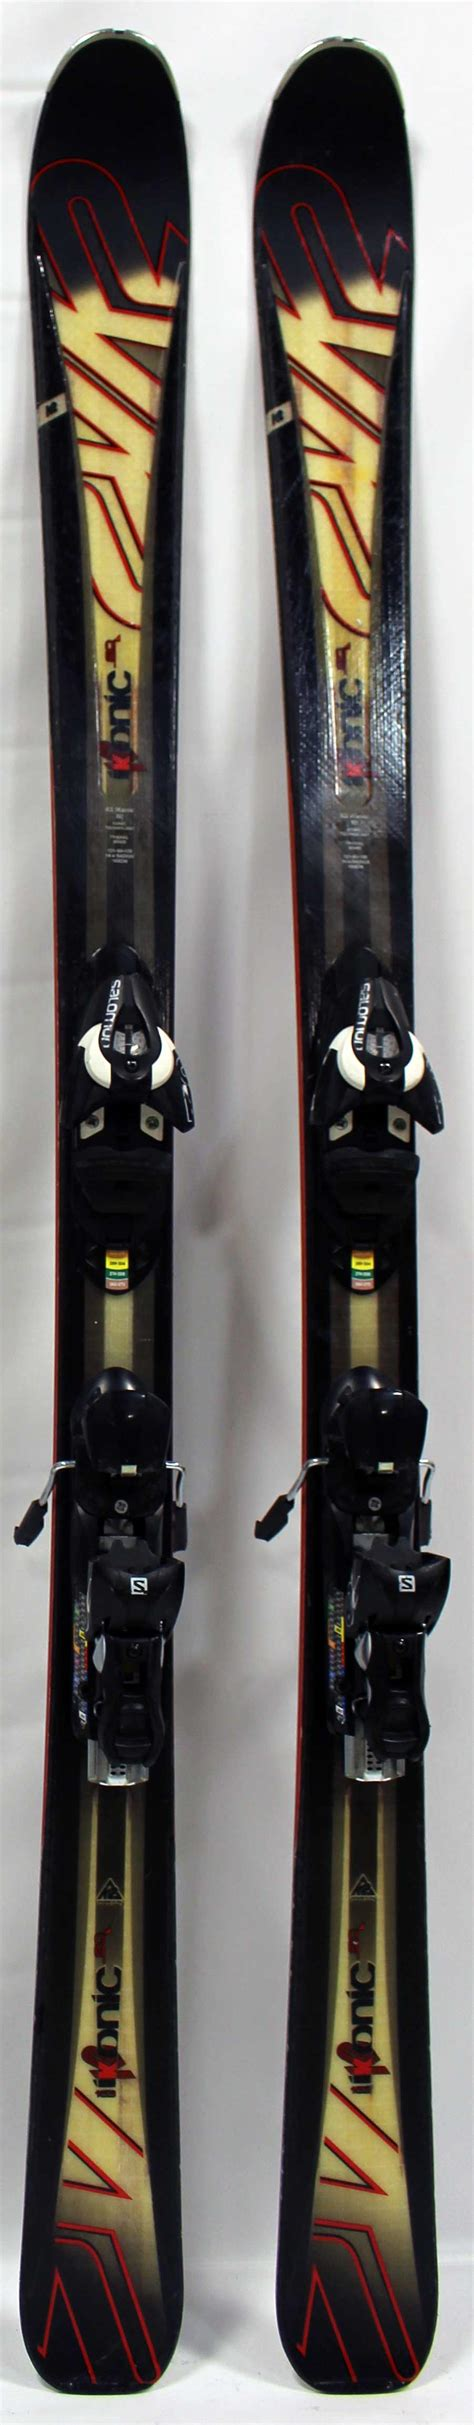 ikonic   demo cm skis  bindings